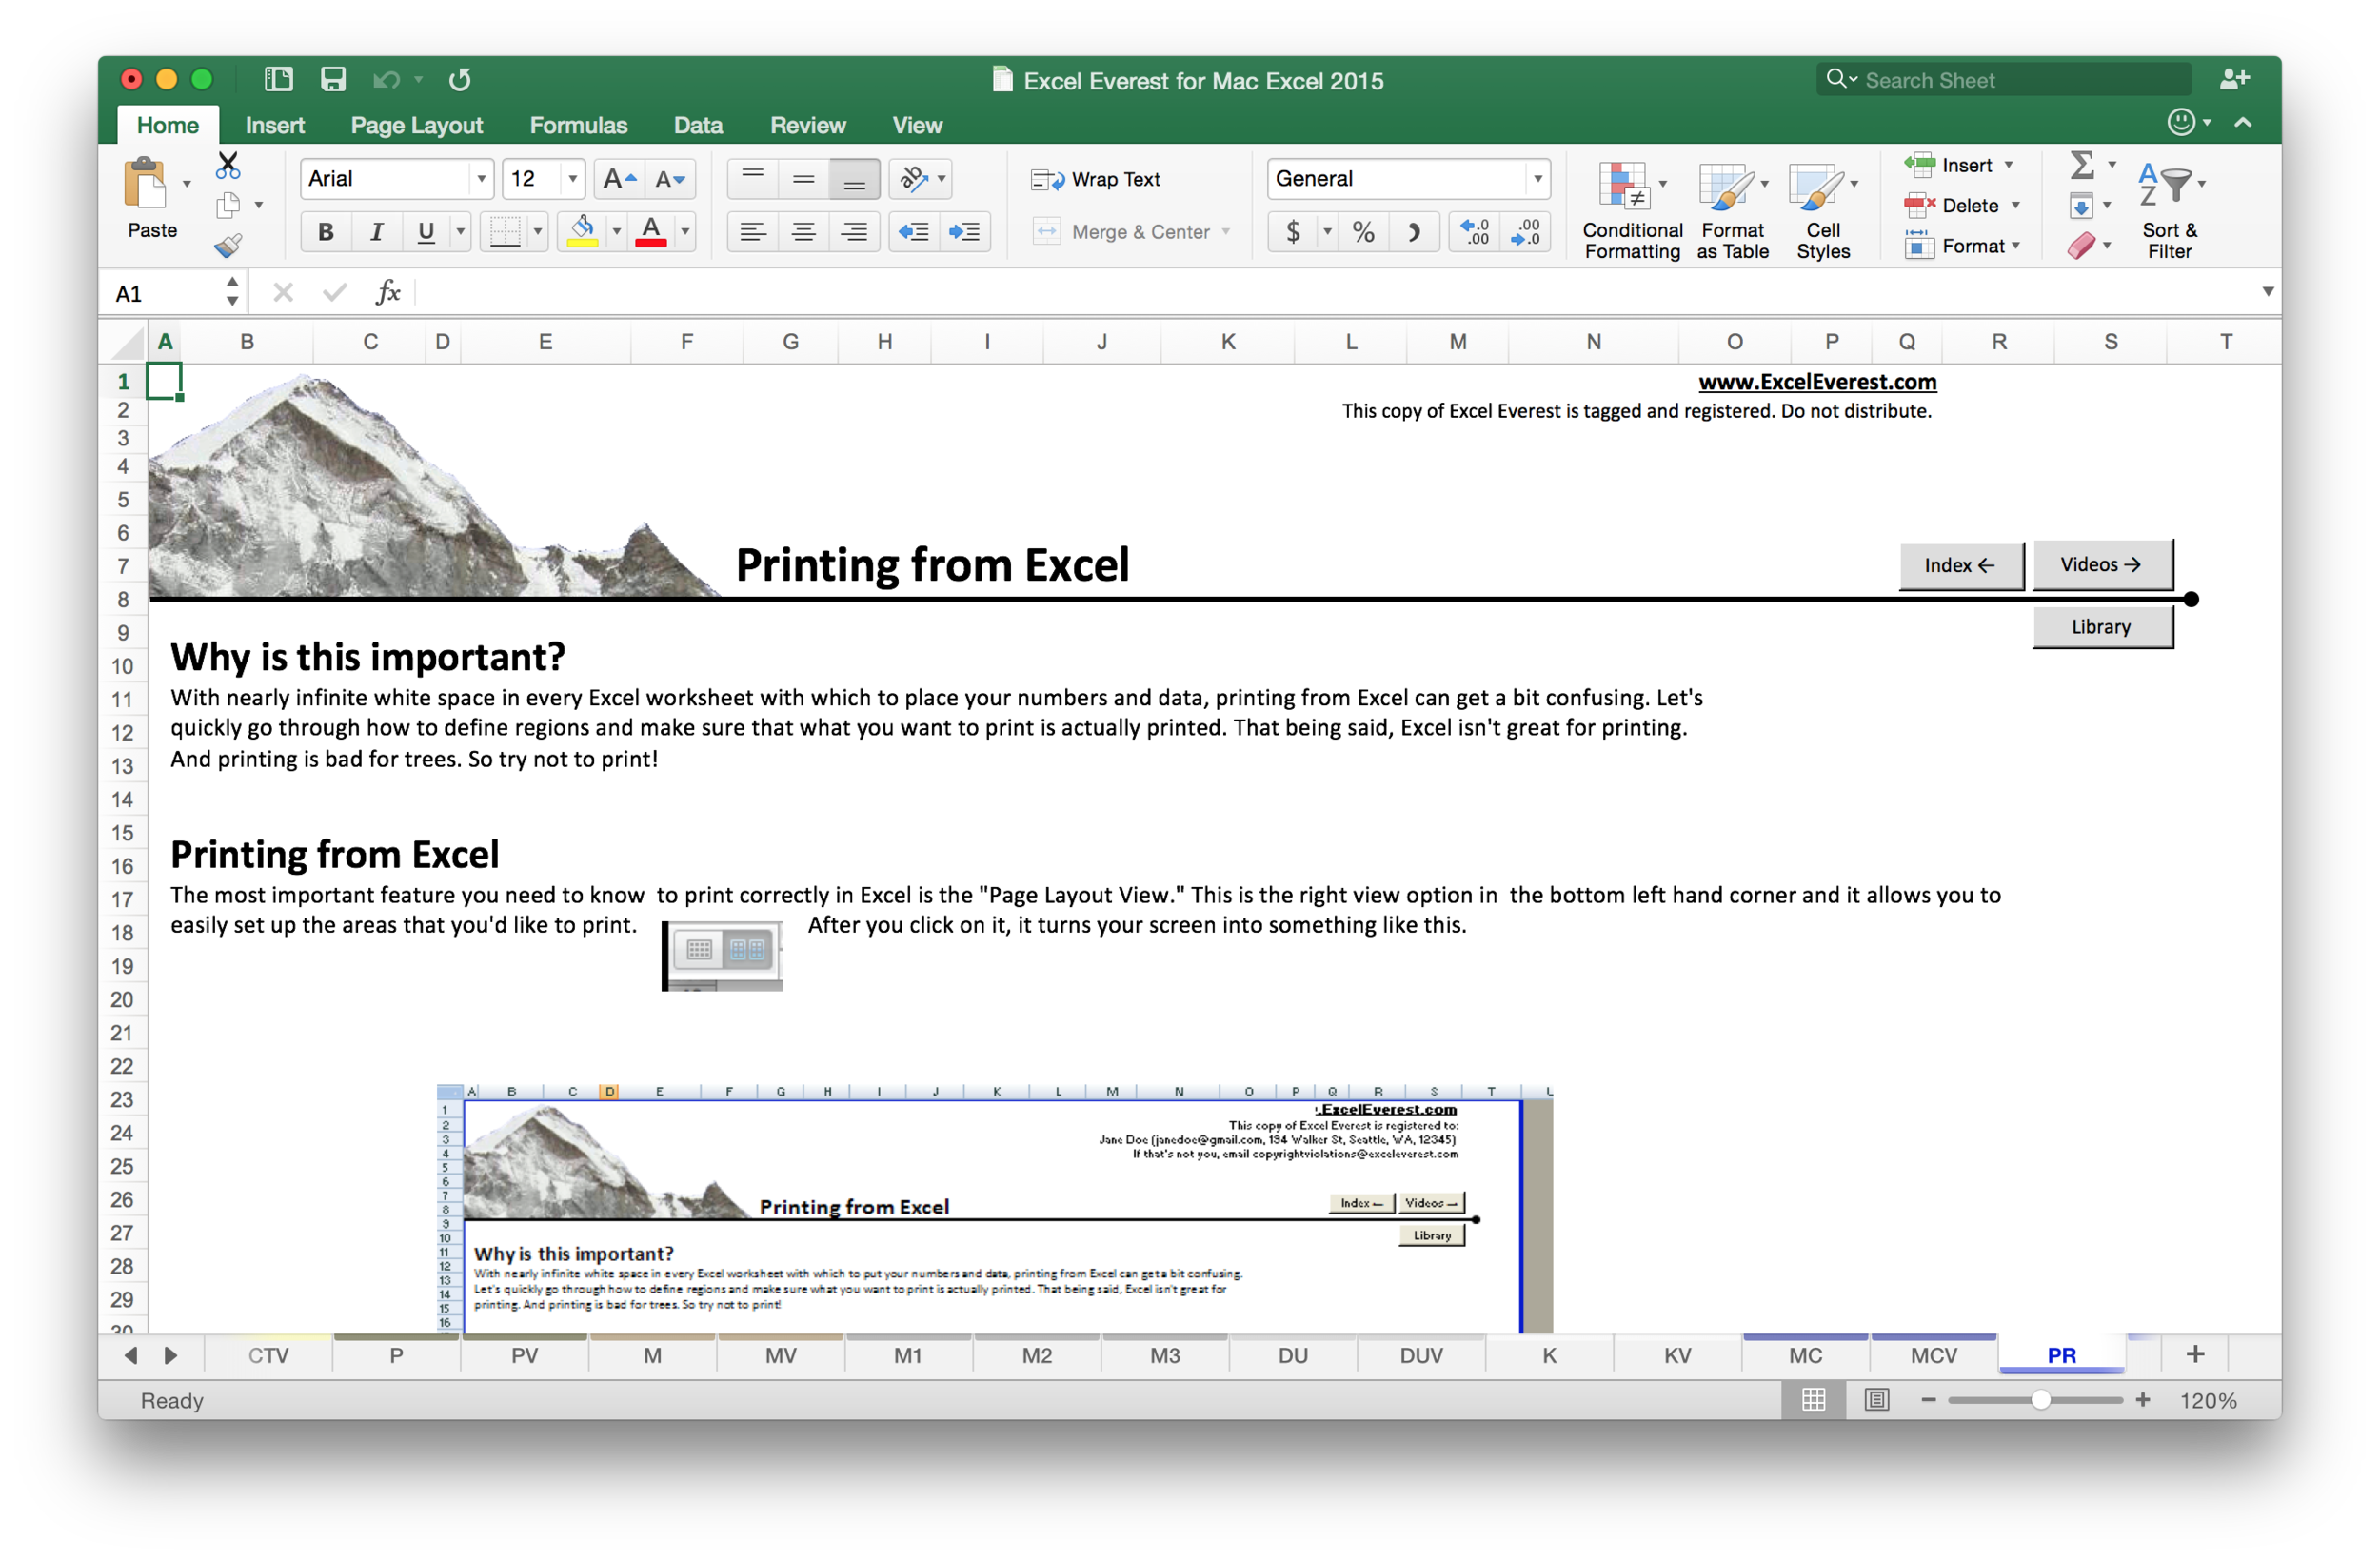 The topics covered in Excel Everest are deliberately designed to give you the practical skills you'll use in your everyday Excel journey. Excel Everest covered 41, hand-selected topics based on real business, research, and academic needs and examples.